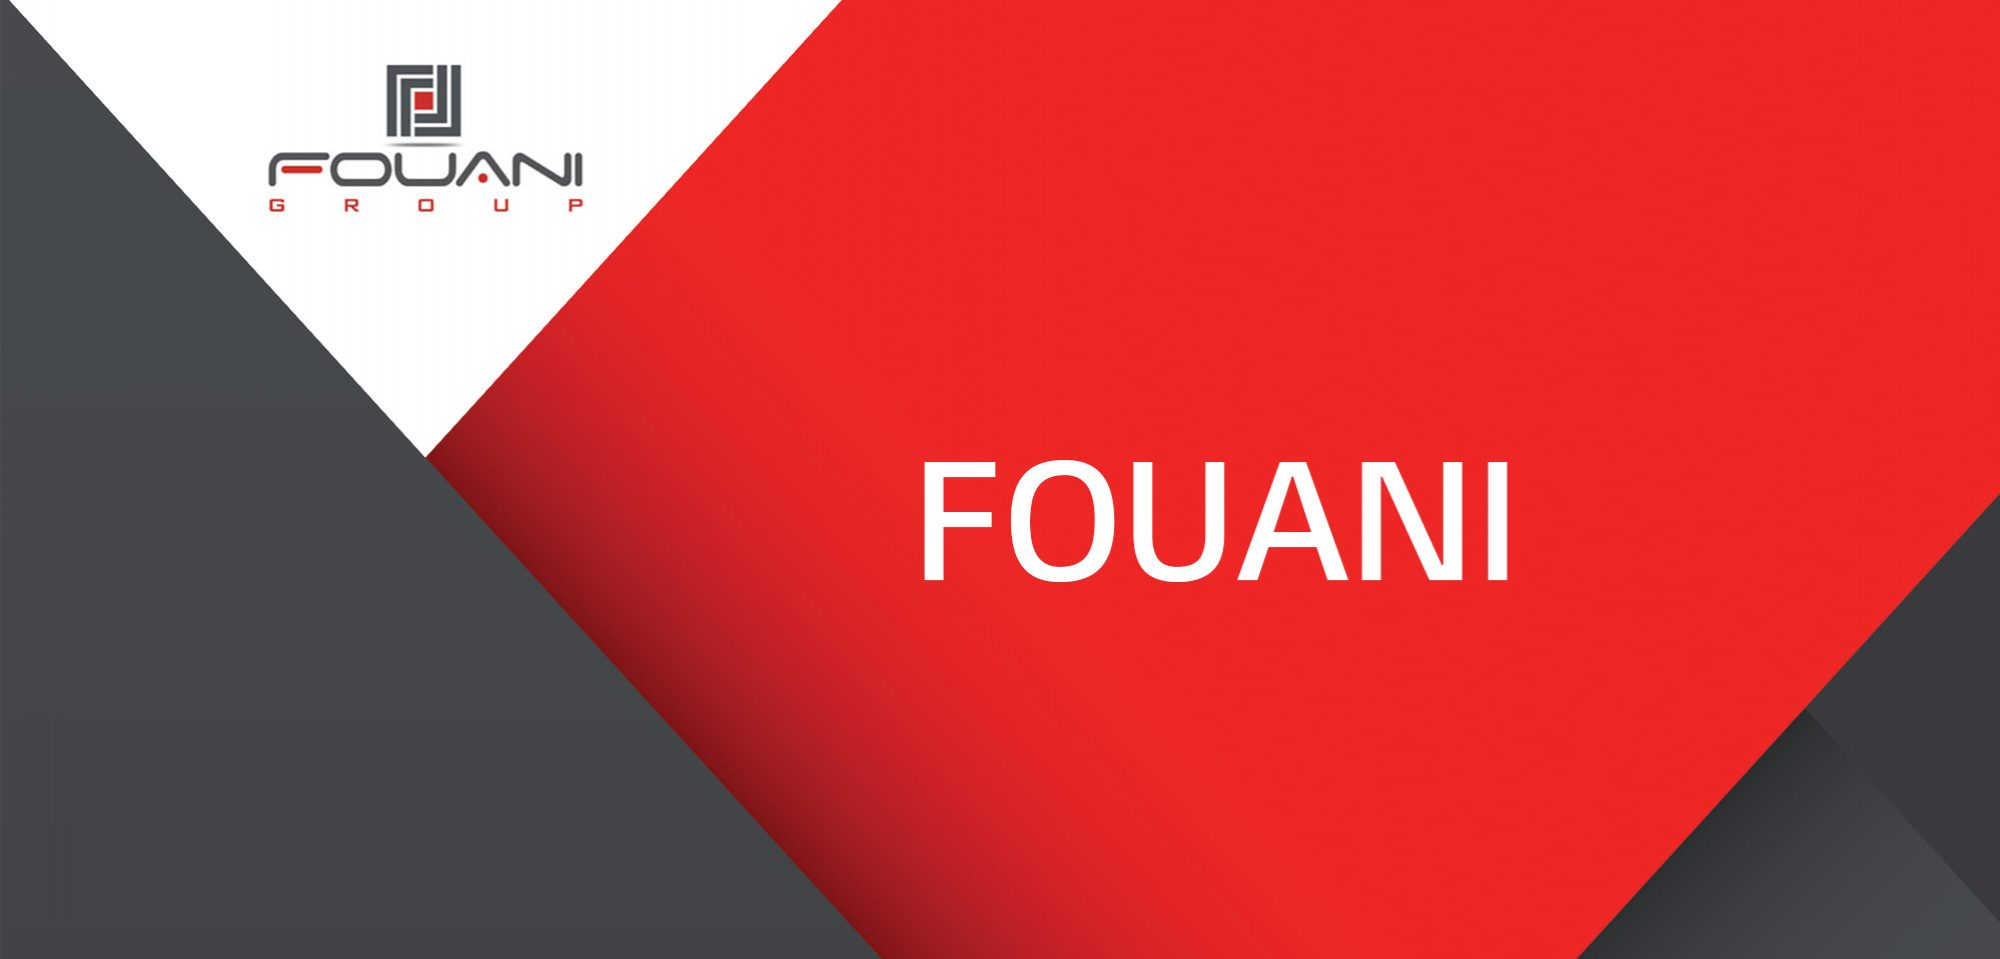 FOUANI GROUP on